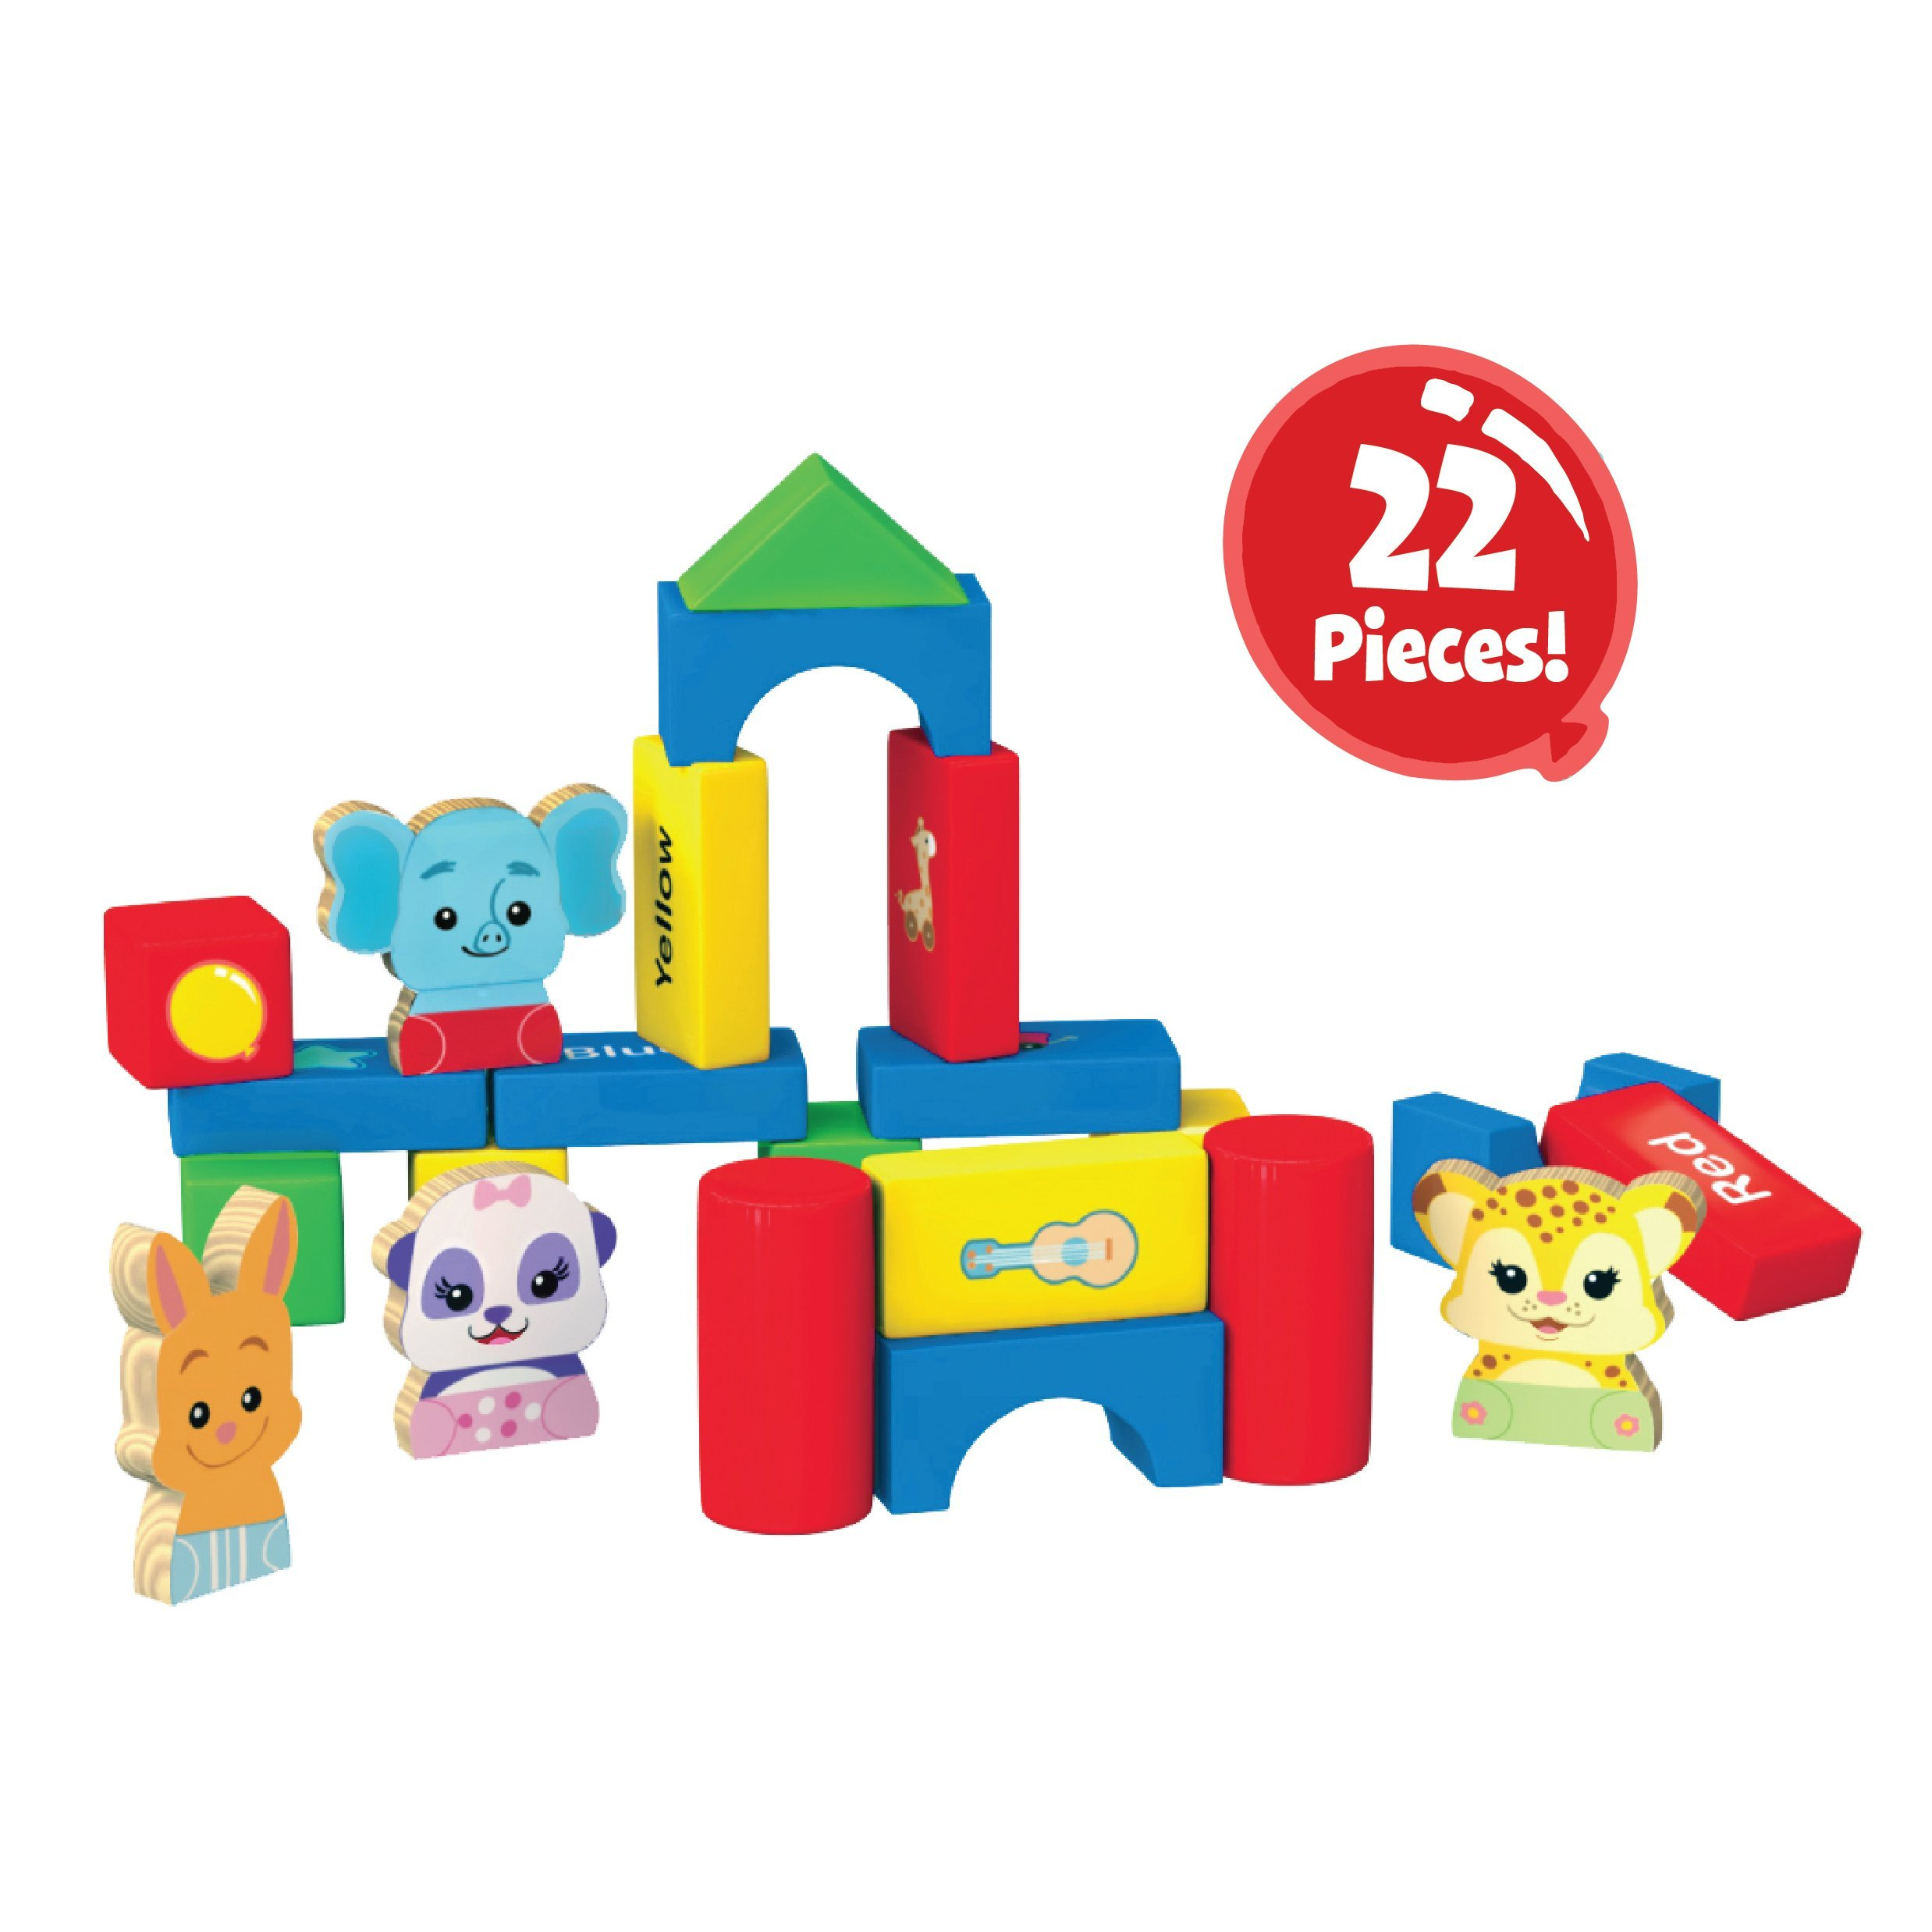 Word Party My First Building Blocks, 22 Piece Wood Set - Lulu, Bailey, Franny, Kip and 18 Blocks of Different Shapes and Colors - from the Netflix Original Series -18+ Months